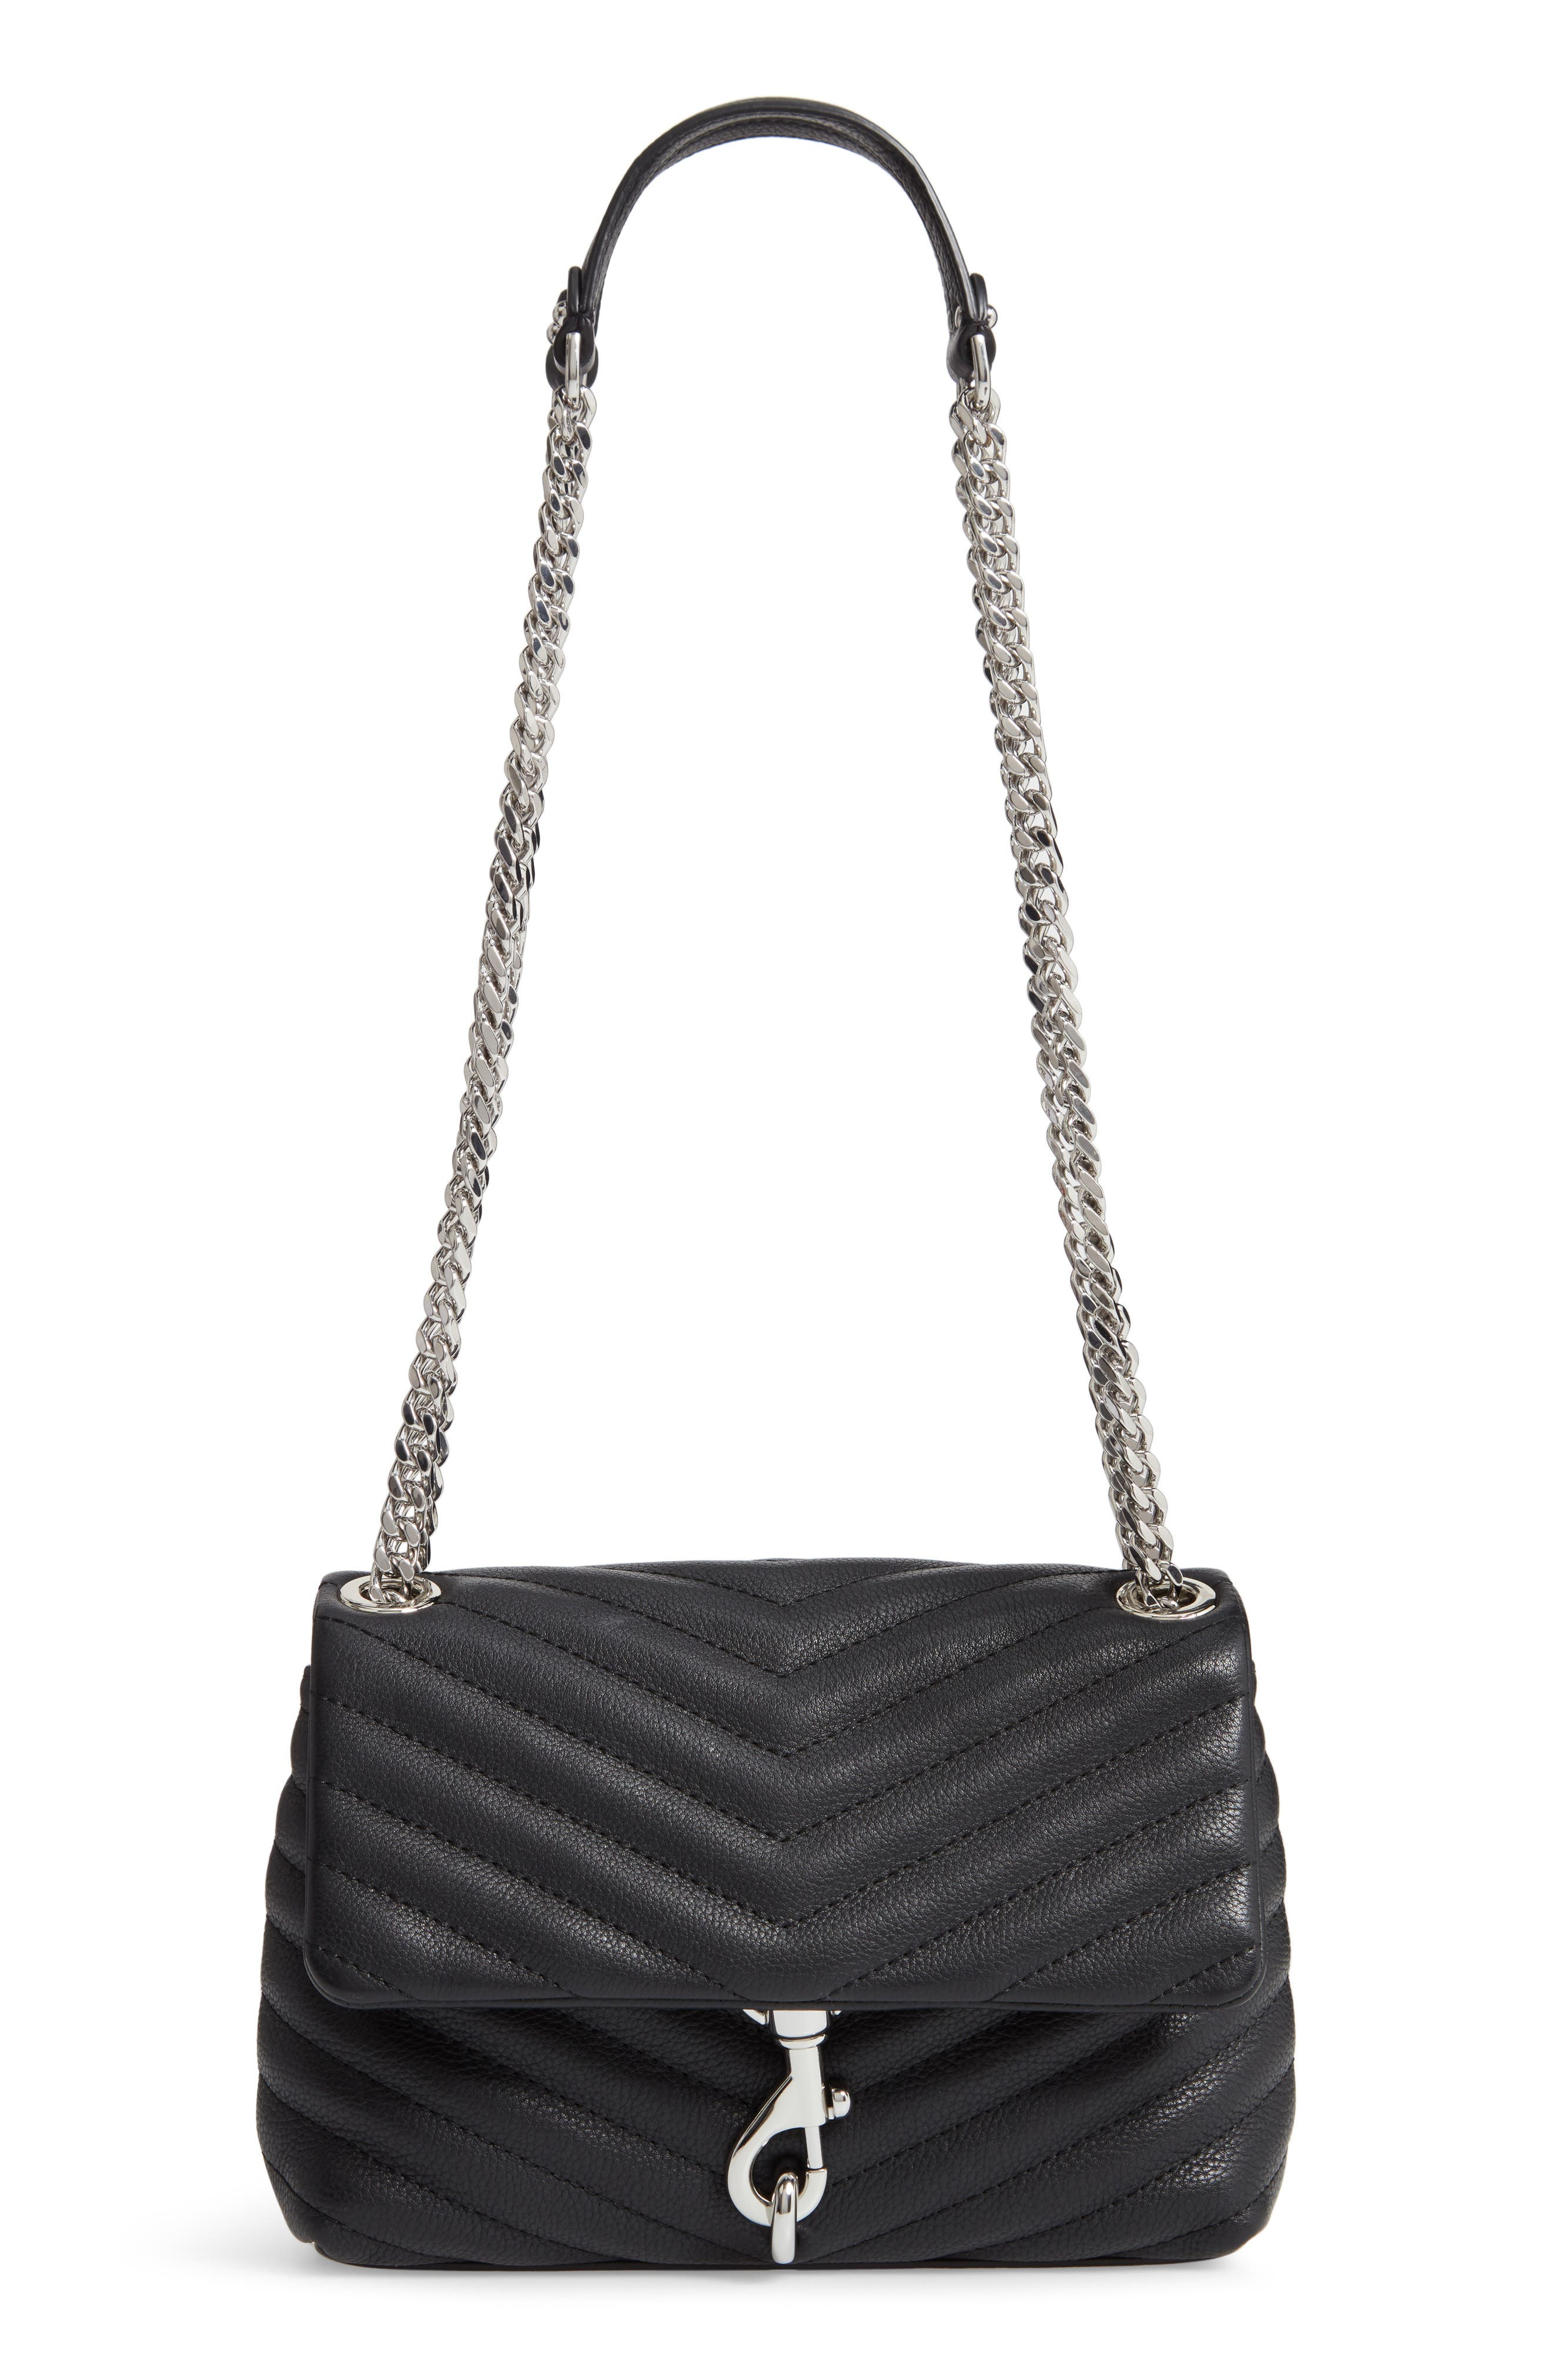 Edie Quilted Leather Crossbody Bag - Black